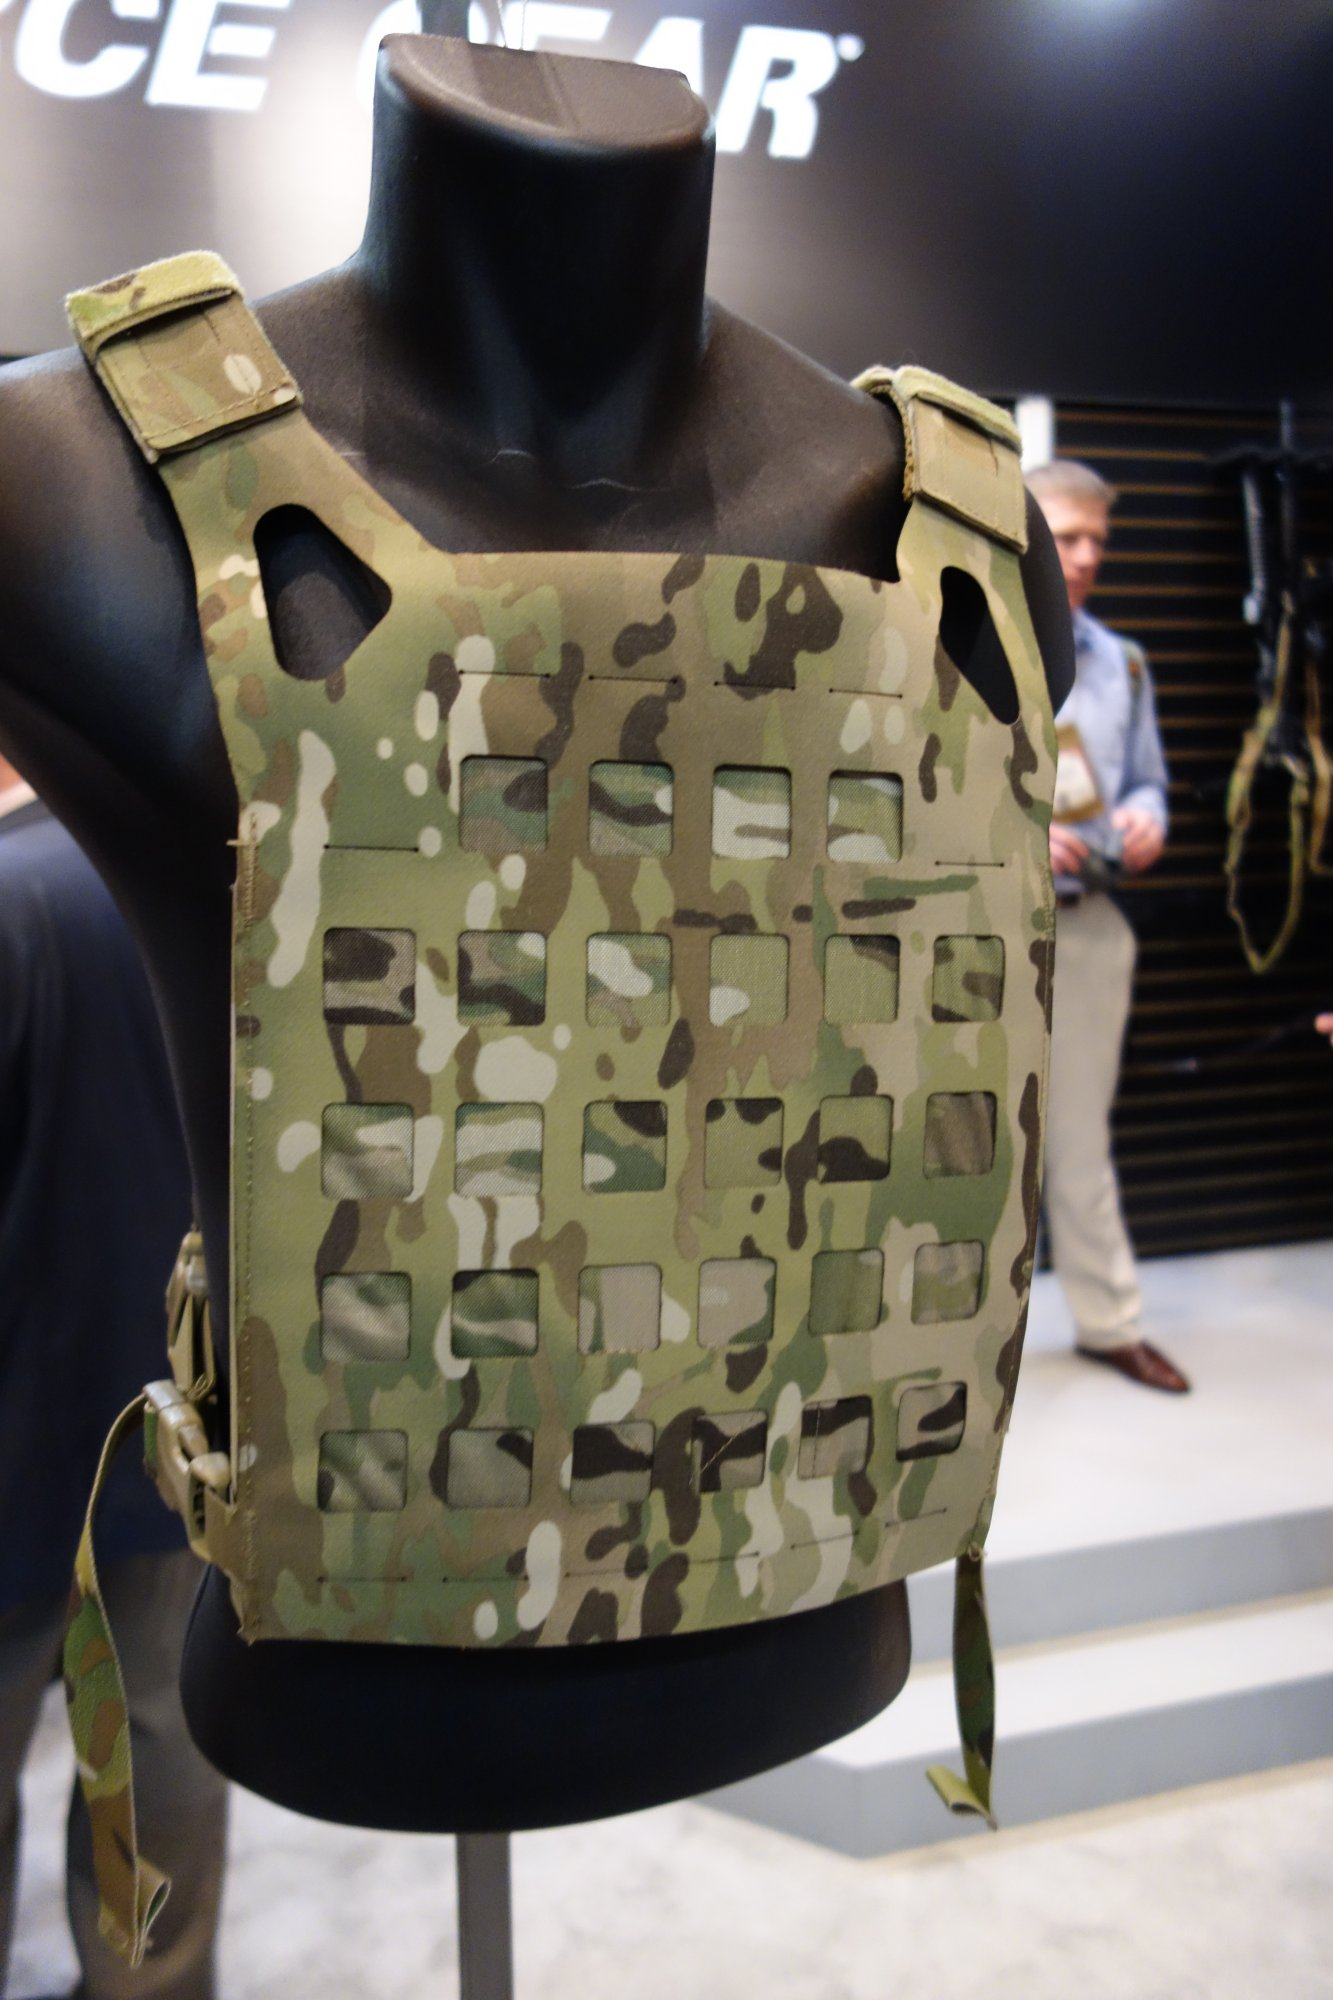 Blue Force Gear BFG PLATEminus Ultra Lightweight Low Profile Low Visibility Tactical Armor Plate Carrier with MOLLEminus and ULTRAcomp Crye MultiCam Camo Pattern at SHOT Show 2013 David Crane DefenseReview.com DR 2 Blue Force Gear (BFG) PLATEminus Ultra Lightweight Low Profile/Low Visibility Tactical Armor Plate Carrier and BELTminus and SPLITminus Battle Belt/Chest Rig/Harness Systems with MOLLEminus Cutaway MOLLE System and ULTRAcomp Laminate: Tactical Body Armor Goes Super Minimalist